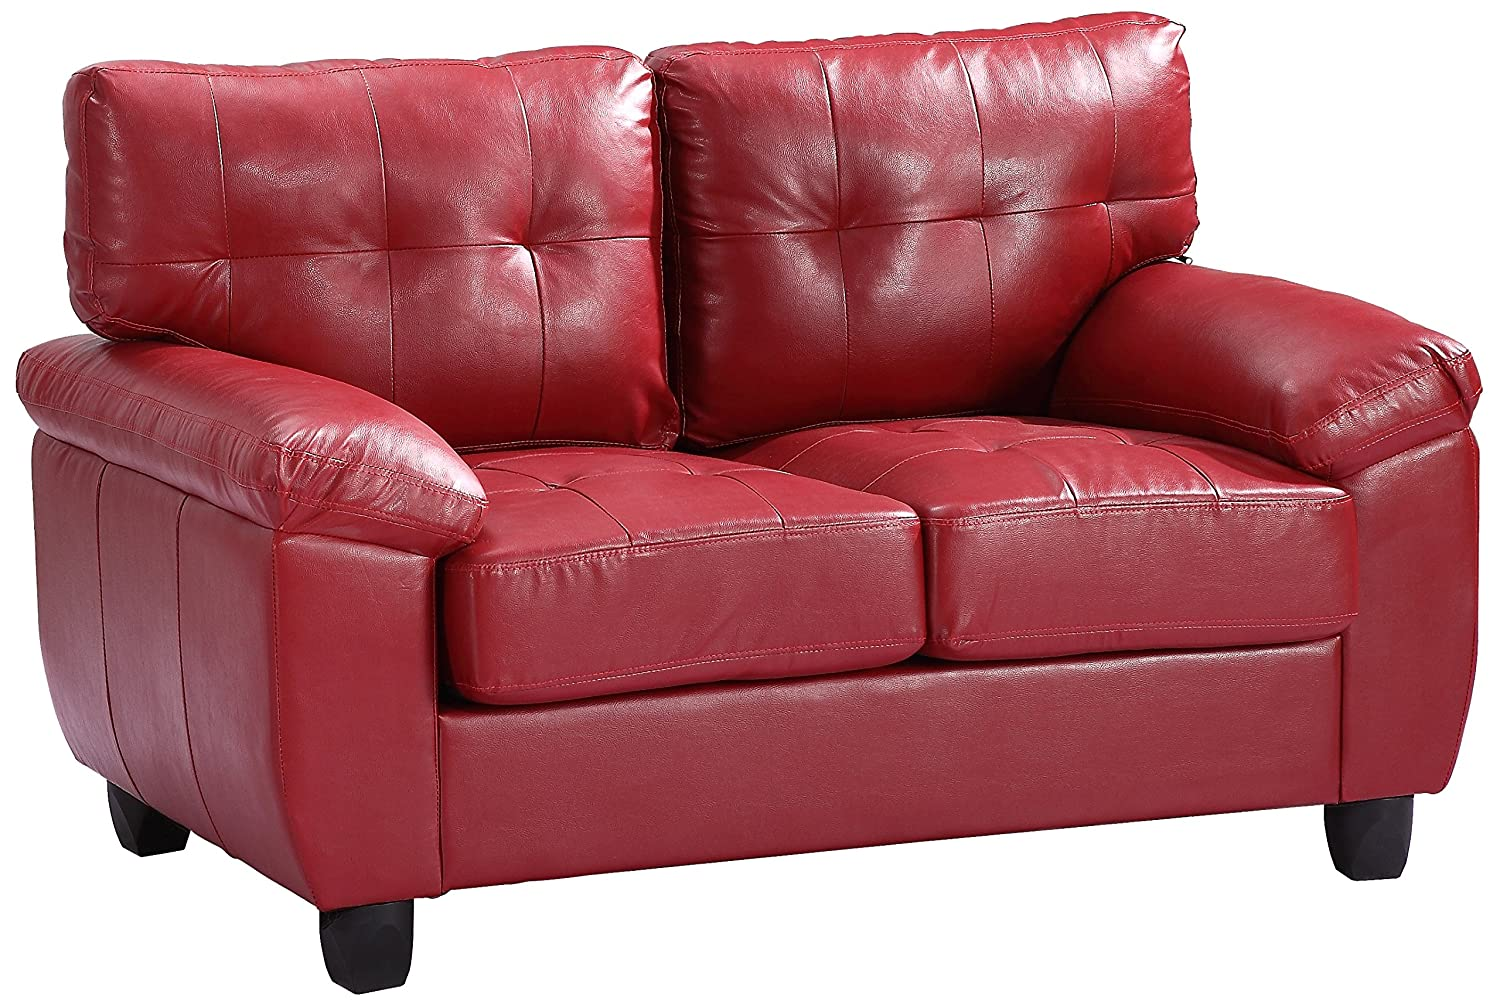 Glory Furniture G909A-L Living Room Love Seat - Red